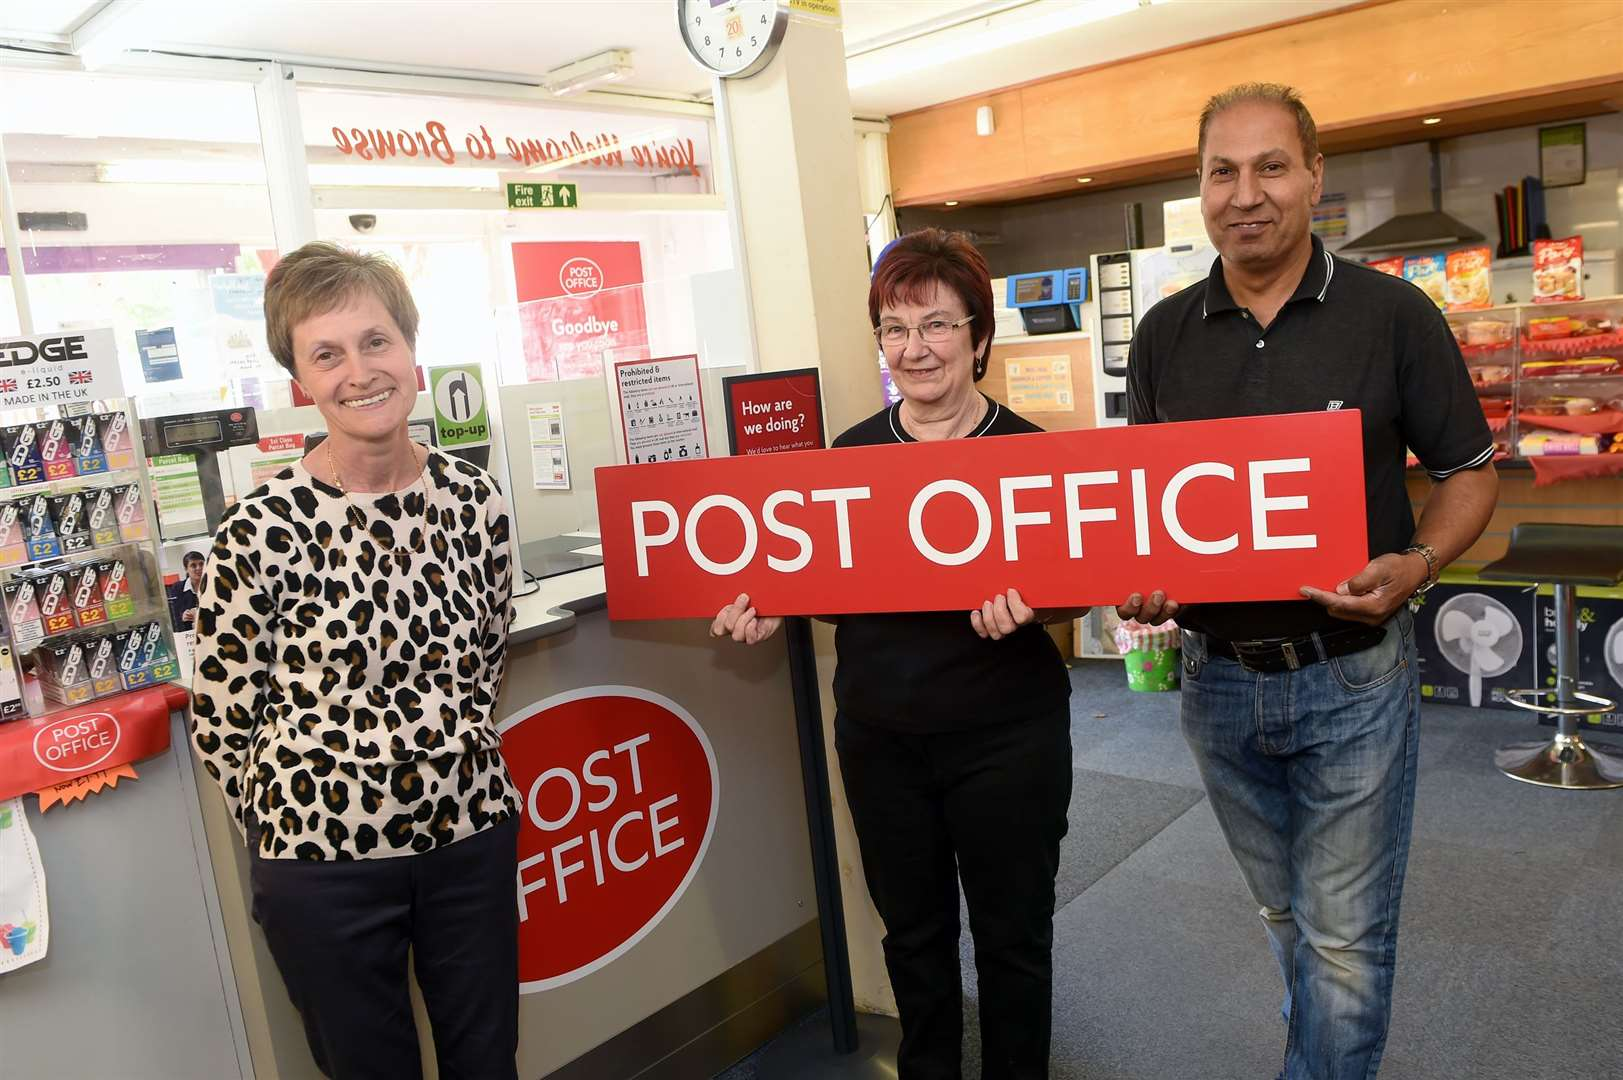 The post office in Glemsford has been reinstated in the village at Hunts Hill stores, after the previous facility was permanently closed for a year.Pictured: Susan Pash (Post Office Clerk), Carole Mitchell (Previous shop owner) and Paul Sanghera (Current Shop owner)PICTURE: Mecha Morton (16297867)